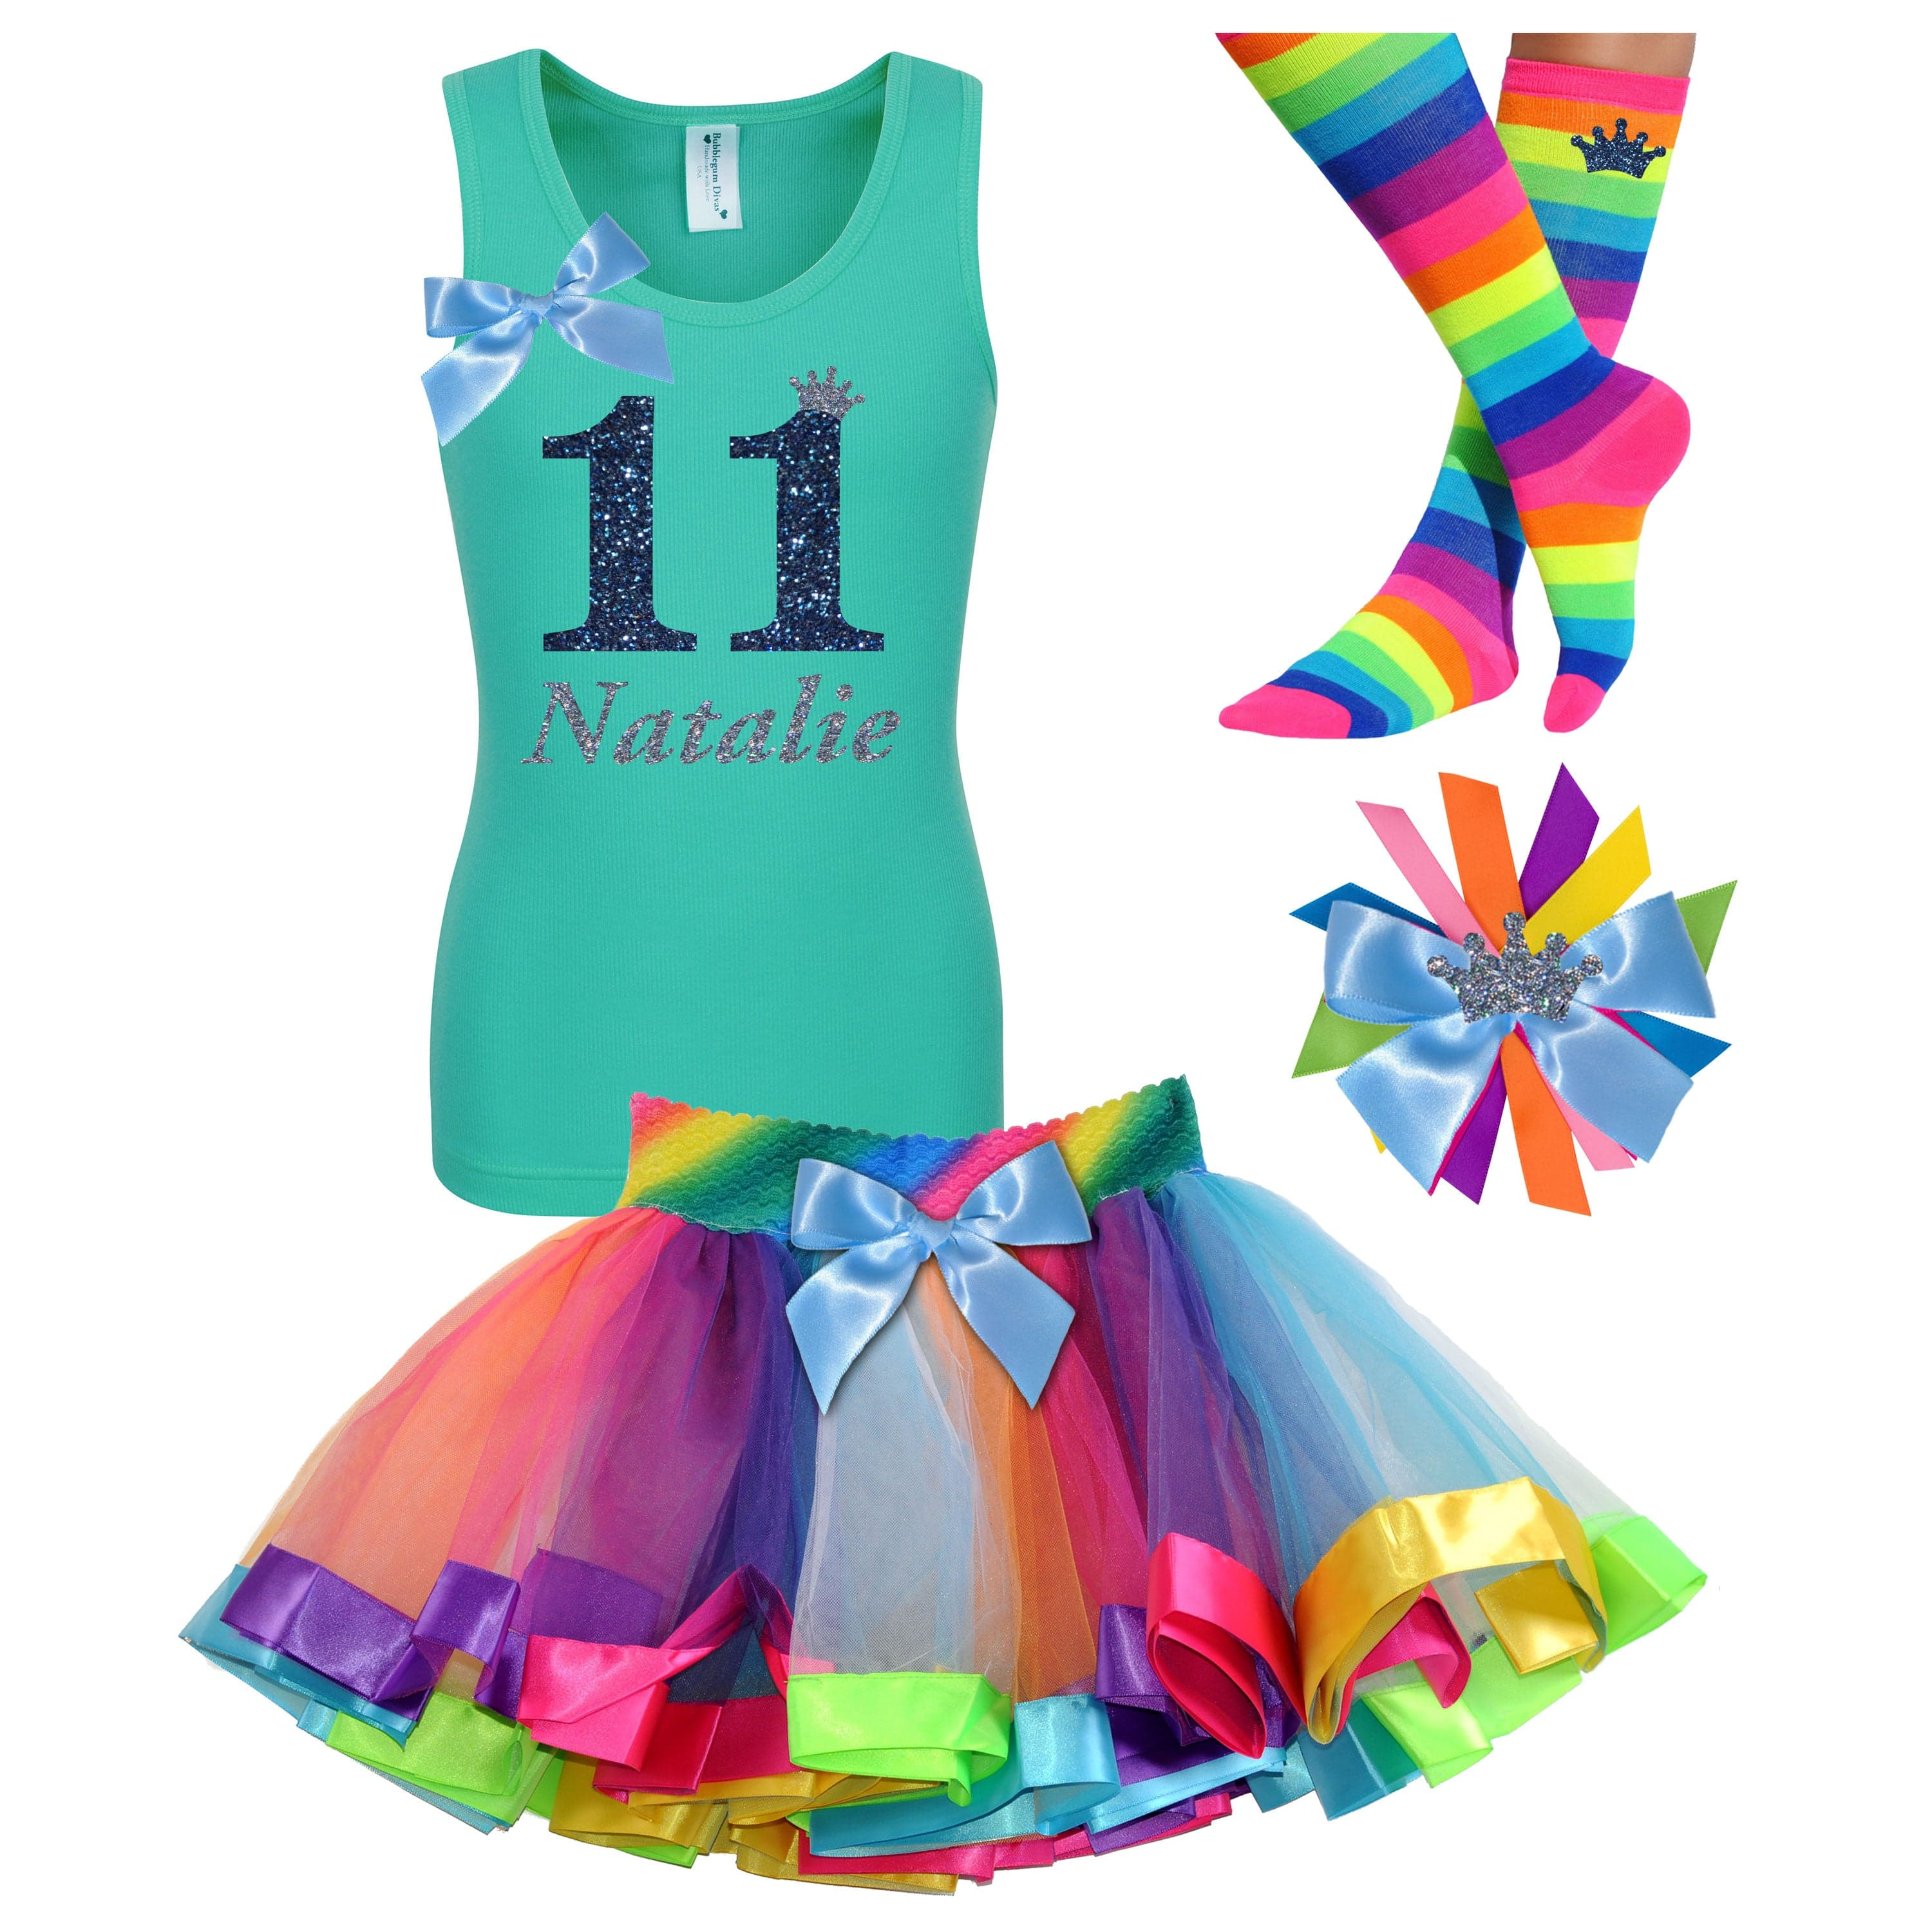 11th Birthday Shirt Girls Rainbow Tween Party Outfit Personalized - Outfit - Bubblegum Divas Store